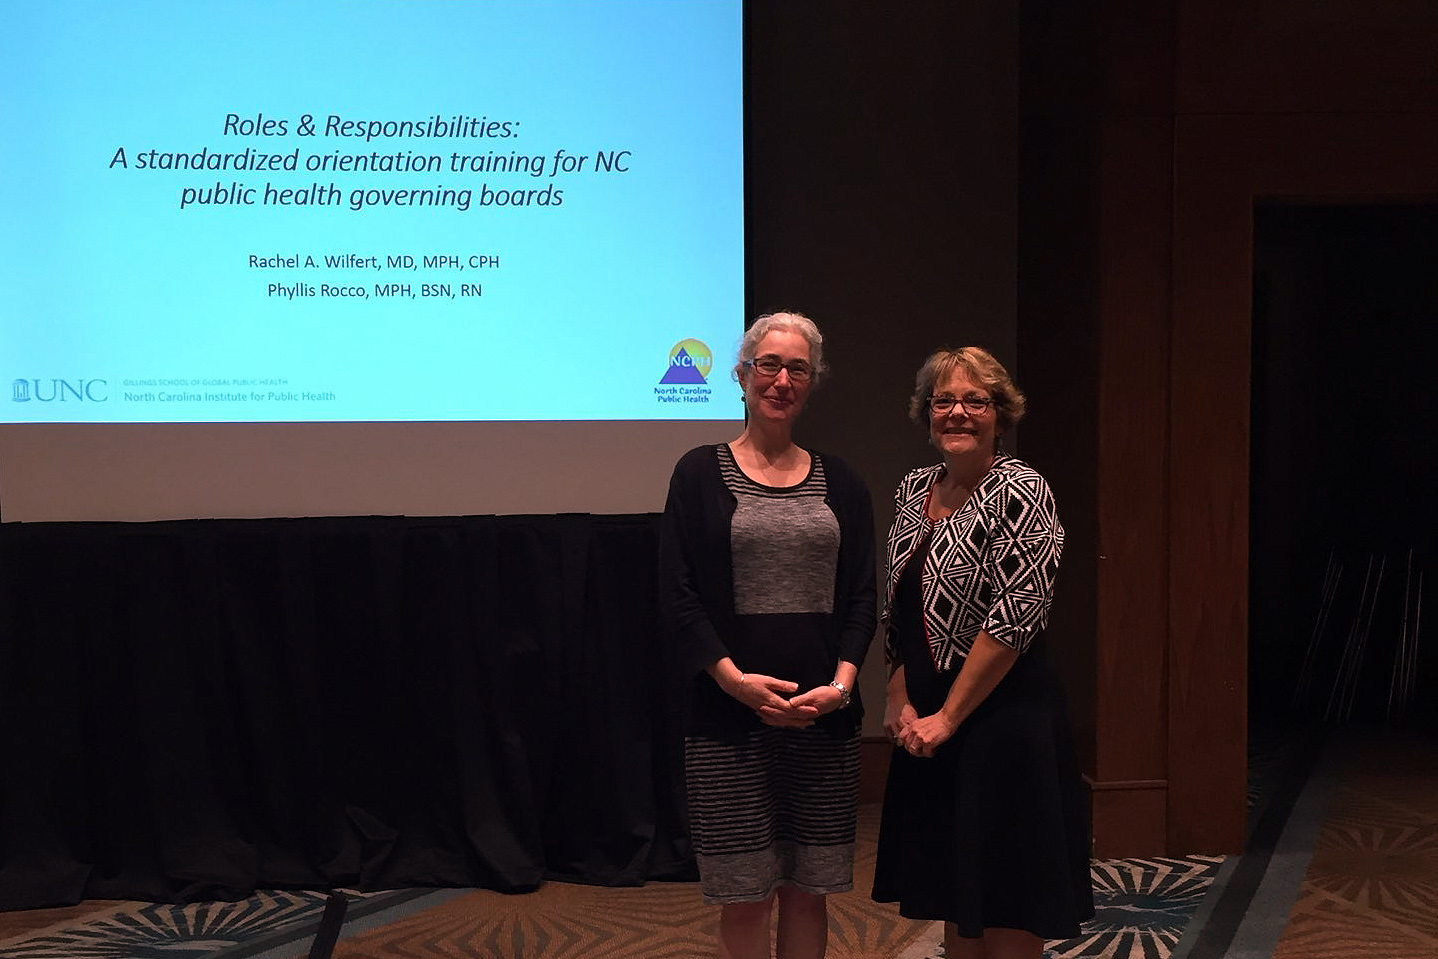 NCIPH Interim Director Rachel Wilfert, MD, MPH, CPH, co-presented with North Carolina Division of Public Health (NCDPH) Local Technical Assistance and Training Branch Head Phyllis Rocco, MPH, BSN, RN, on orientation trainings for North Carolina public health governing boards.